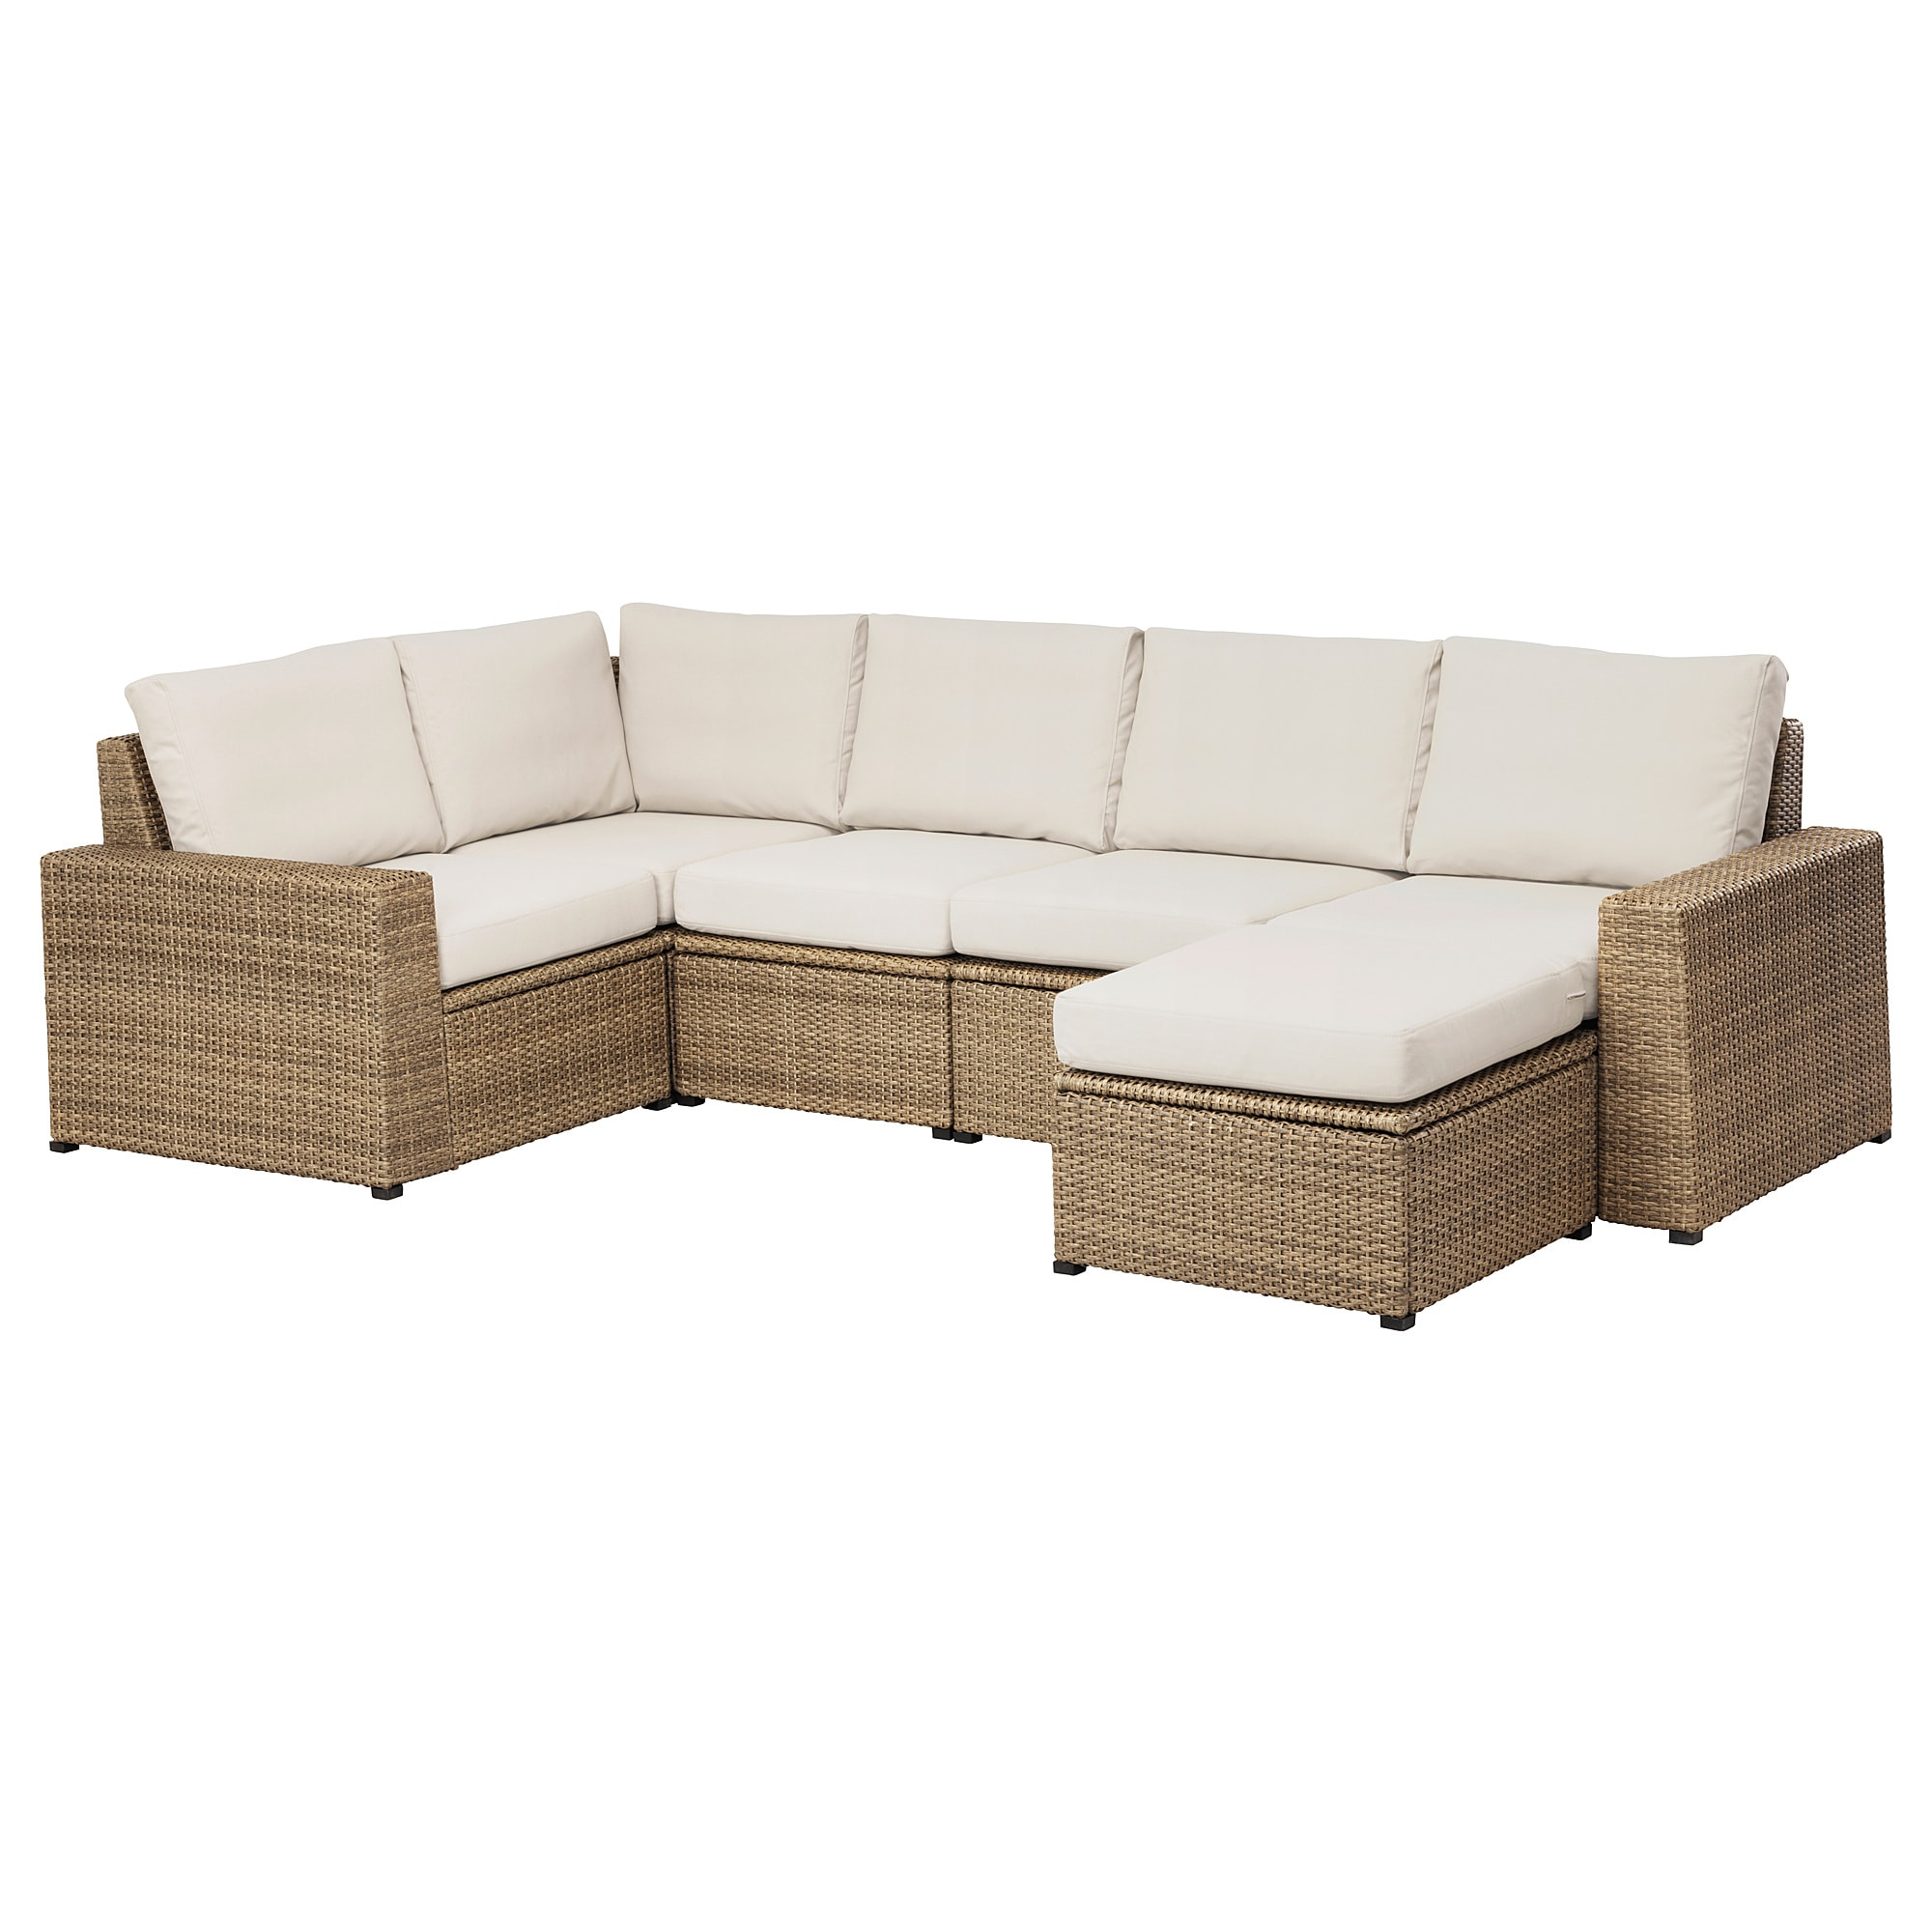 SollerÖn Modular Corner Sofa 4 Seat Outdoor With Footstool Brown Frösön Duvholmen Beige